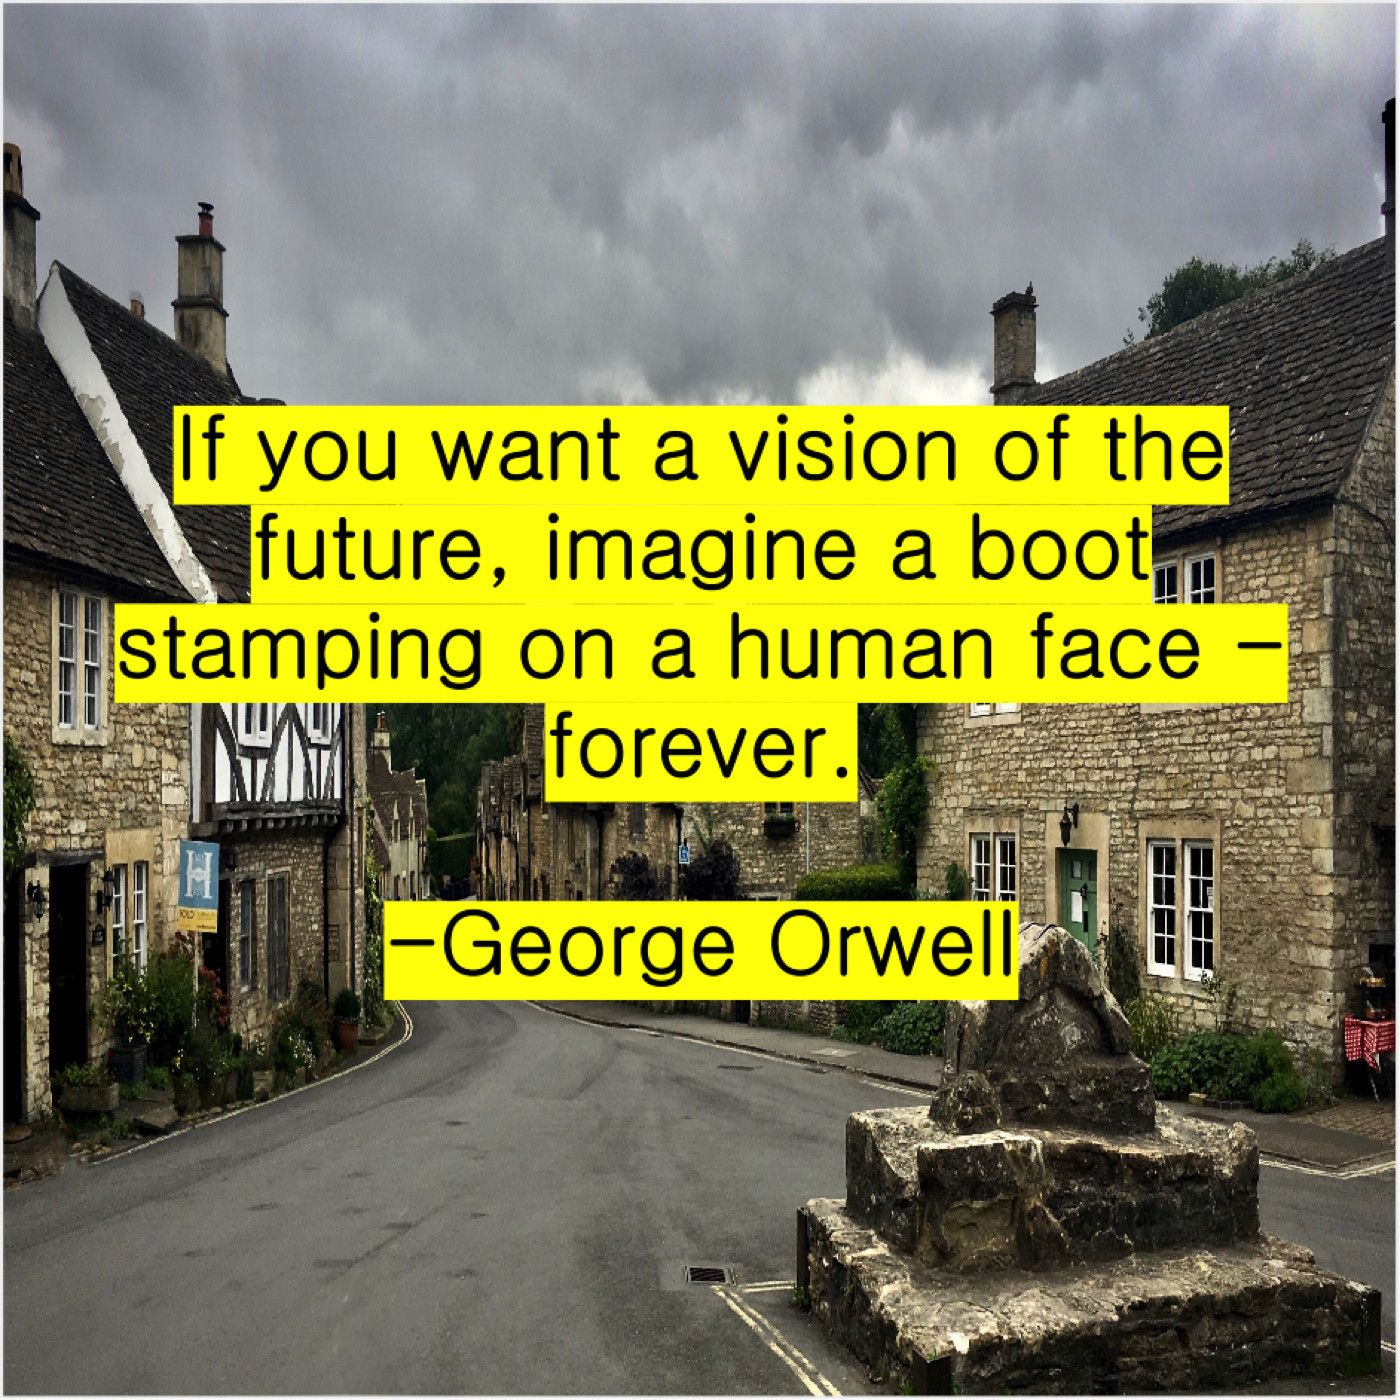 George Orwell - If You Want A Vision